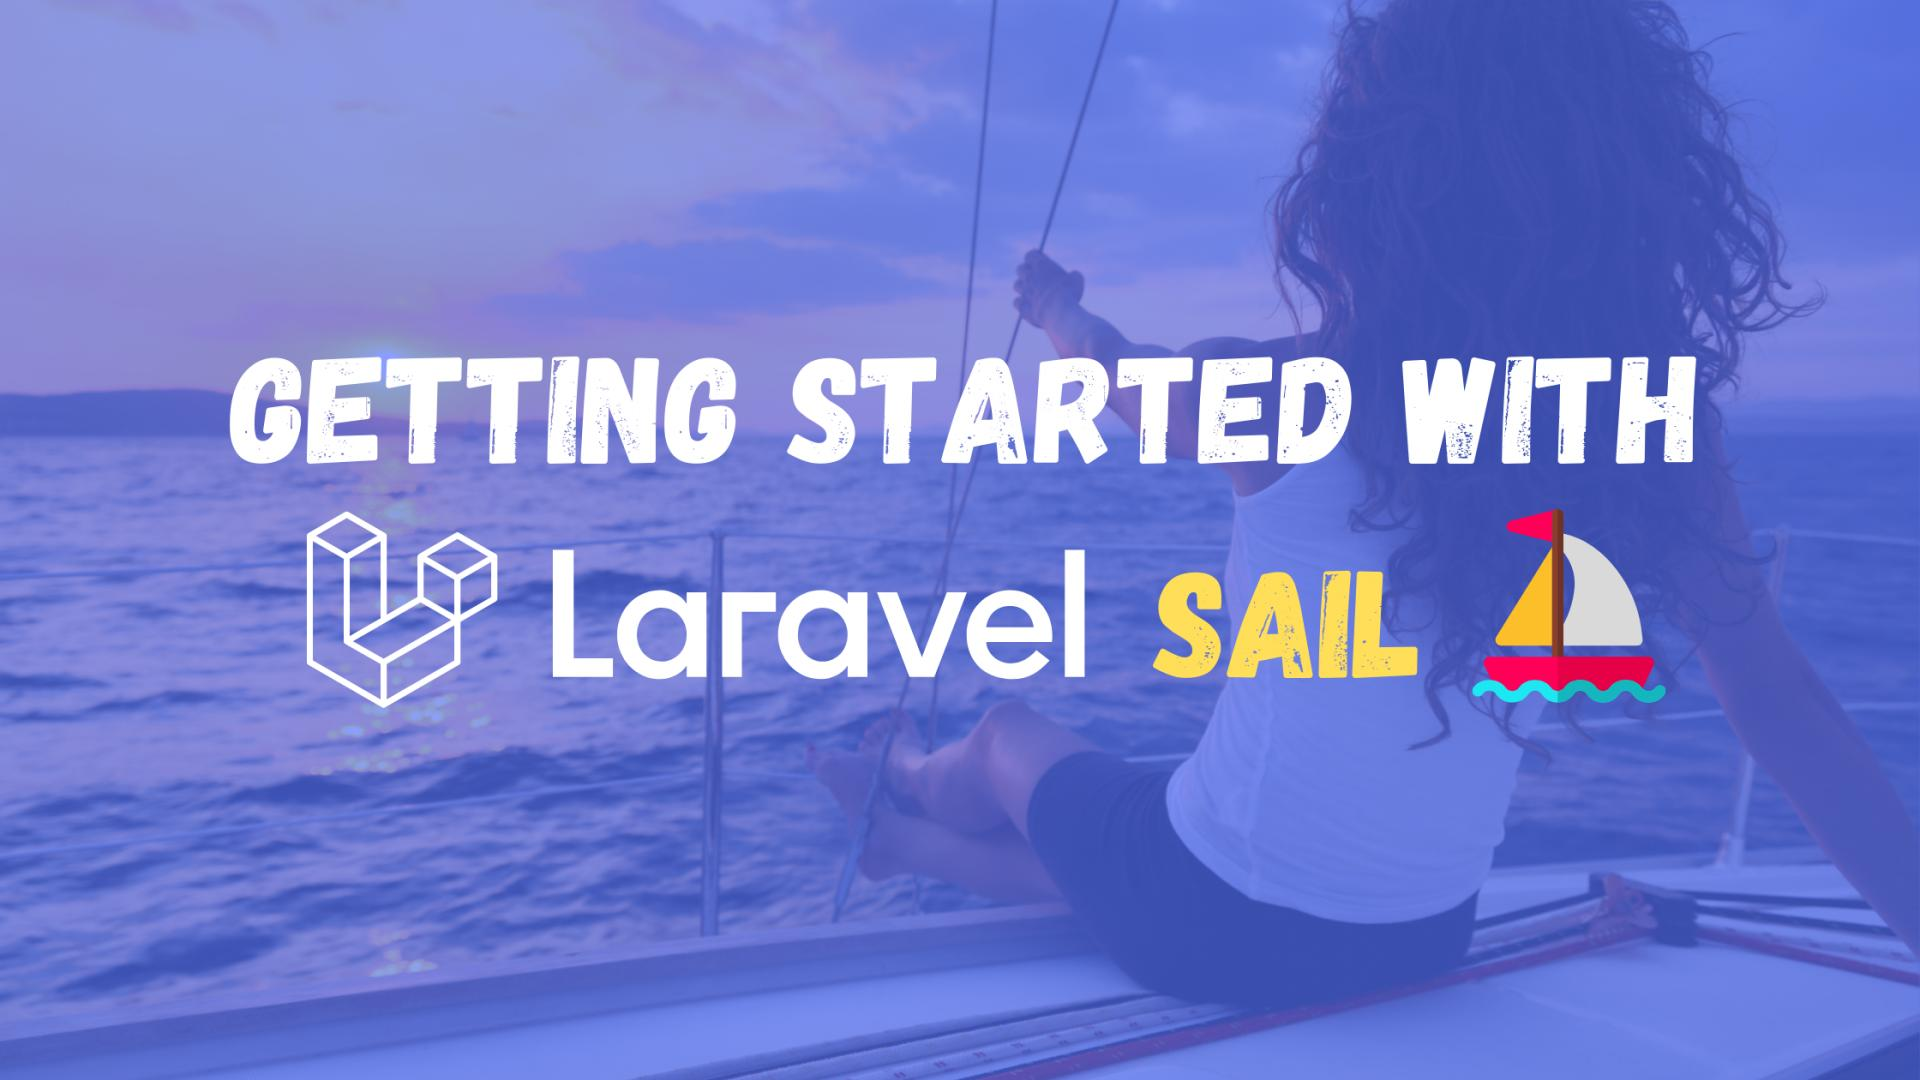 What is Laravel Sail and how to get started?